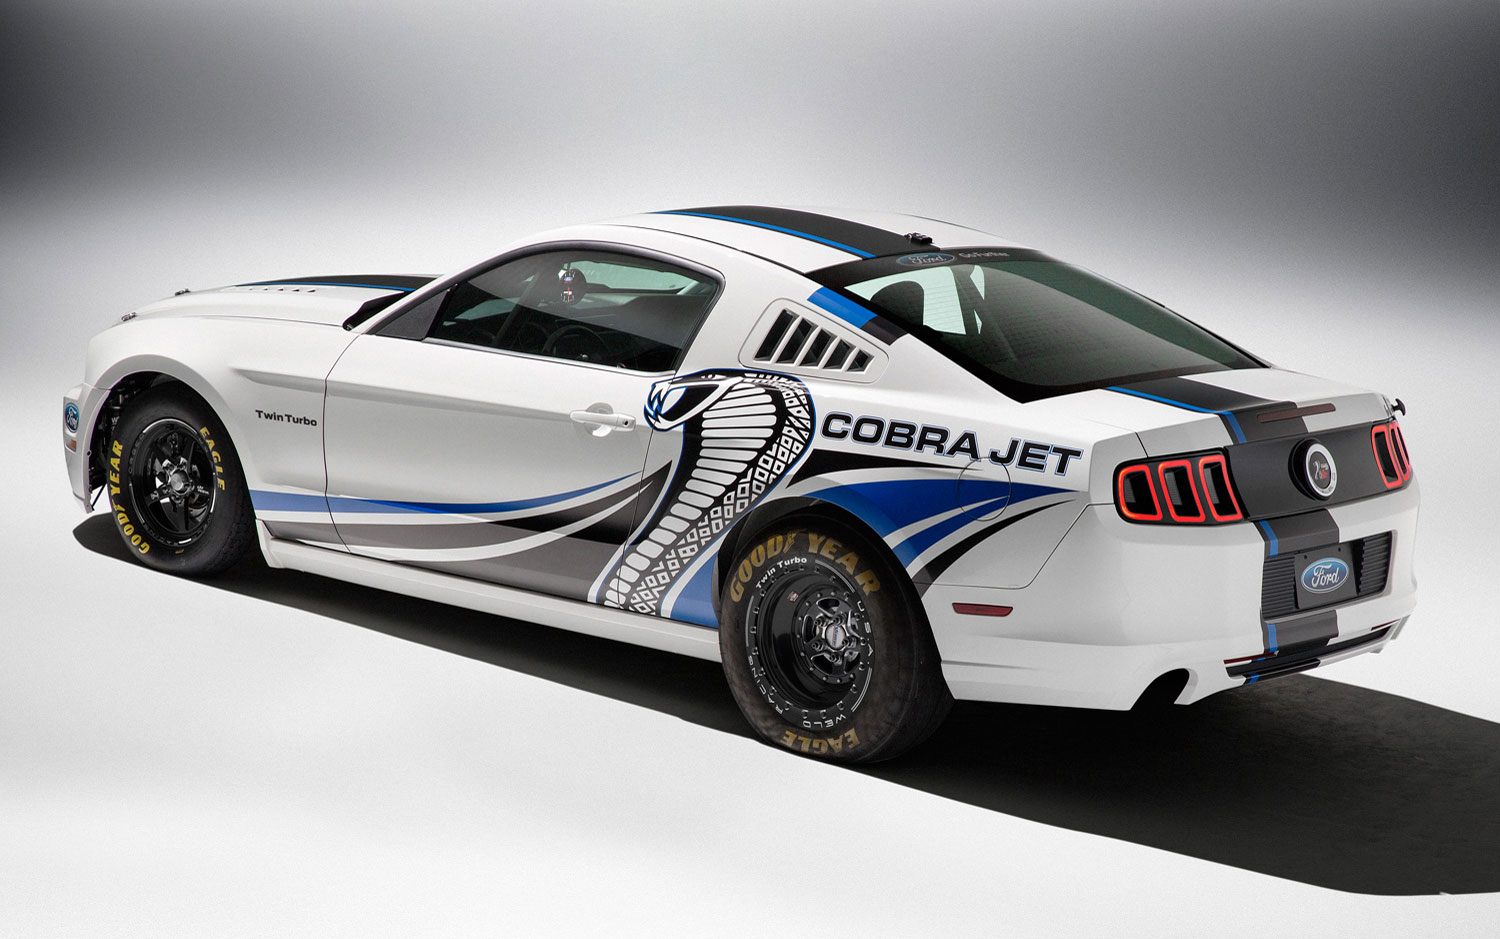 Ford Mustang Cobra Jet Concept Gets Twin-Turbo 5.0L V-8, Debuts at